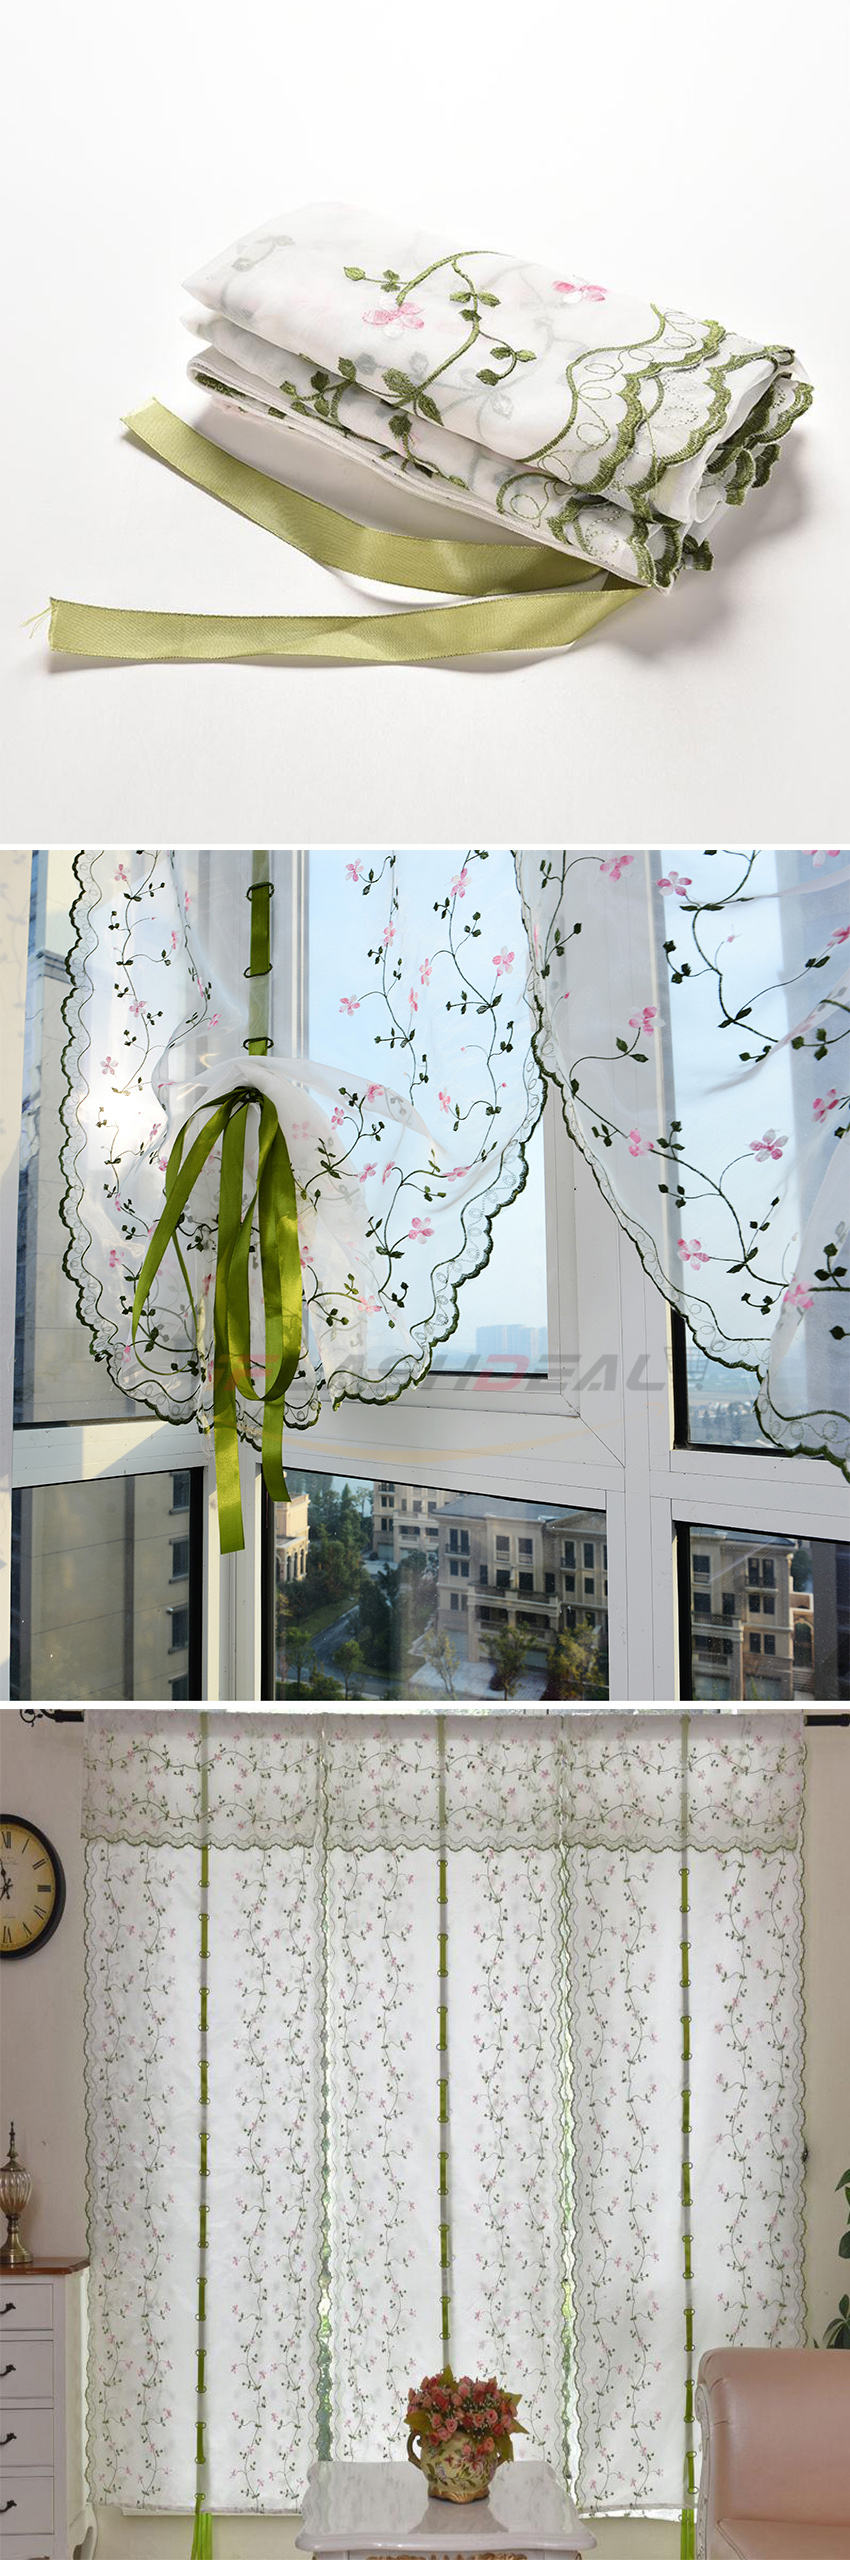 Big Promotion Iflashdeal 1 Pcs Curtain Tulle Door Window Curtain Roman Flower Curtain Embroidered Sheer Curtains Roll Up Rome Curtain Screen For Kitchen Bathroom Living Room Lazada Singapore